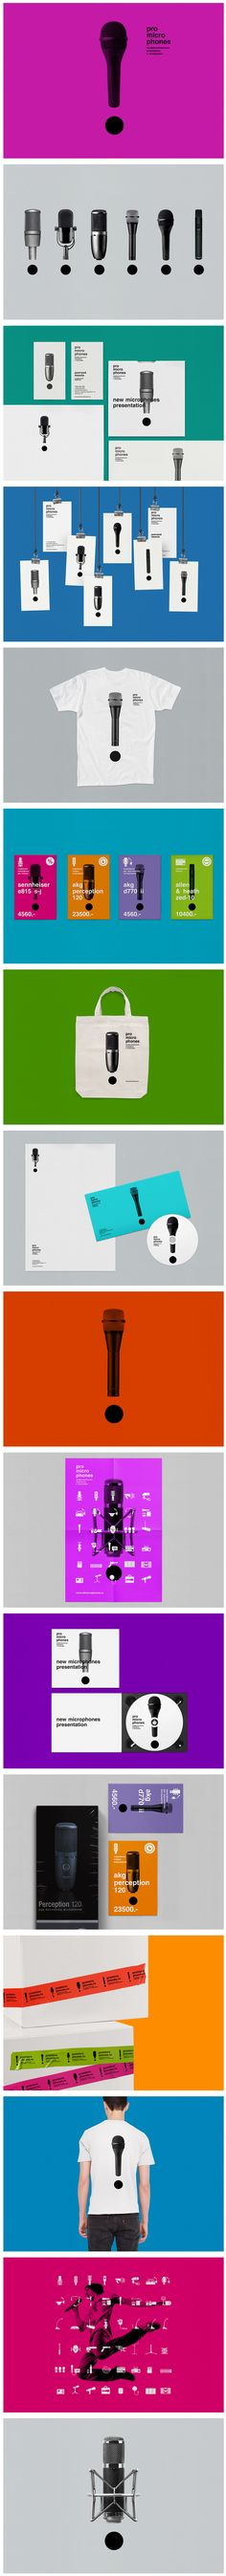 Professional microphones and accessoires online shop identity by Vova Lifanov